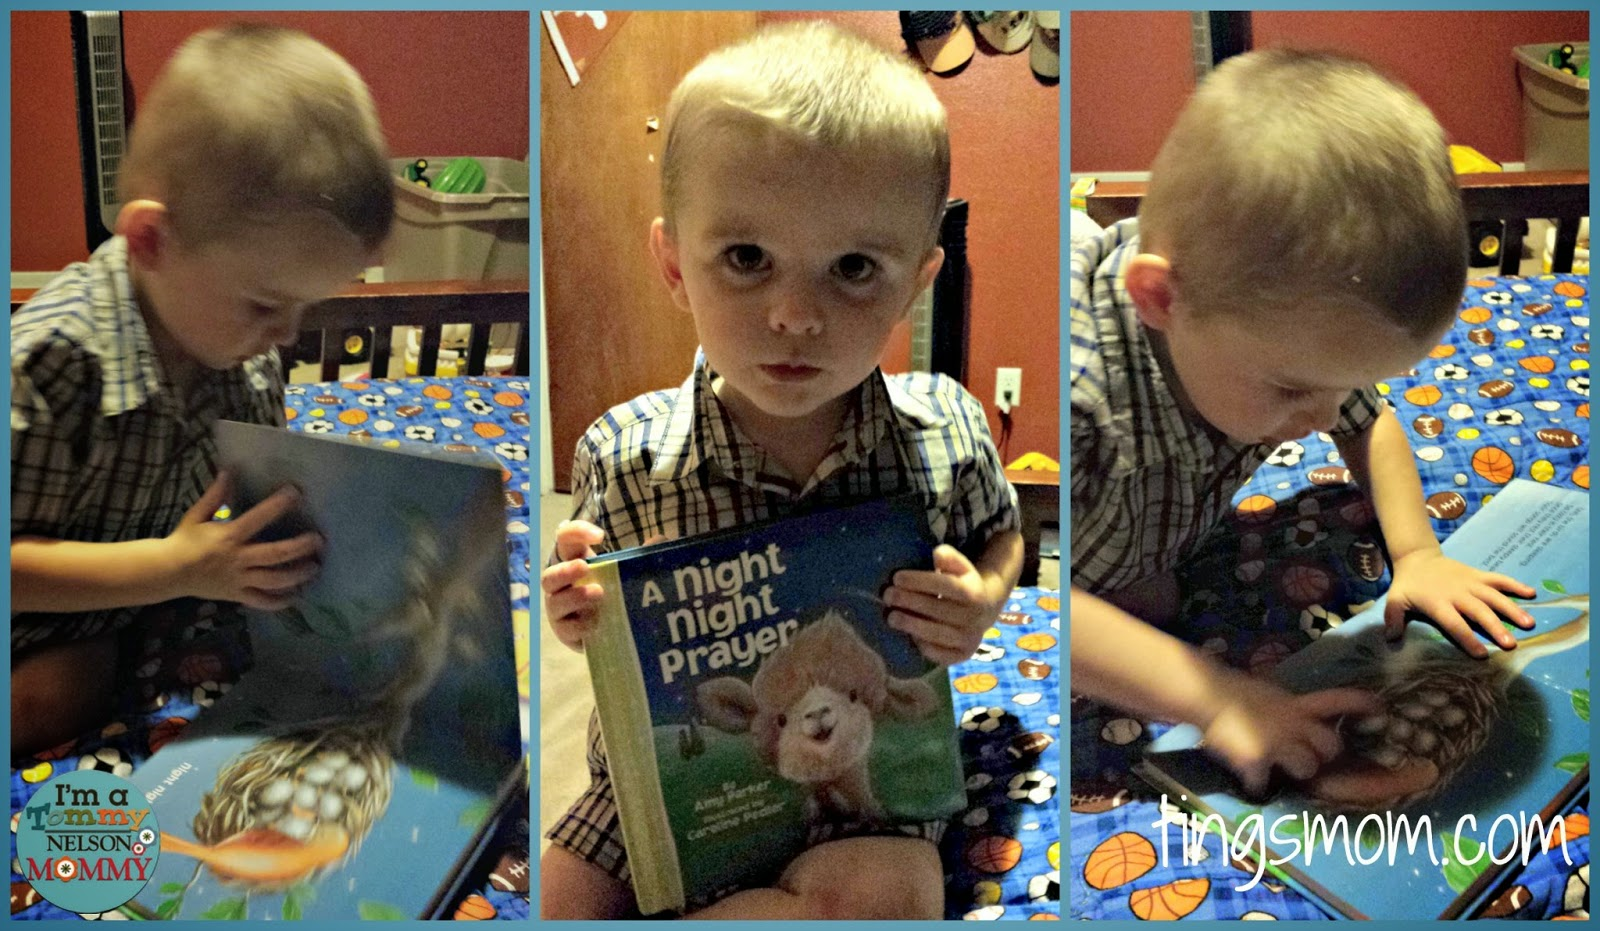 A Night Night Prayer {Review & Giveaway} | #giveaway #sponsored #tommymommy #kidbooks